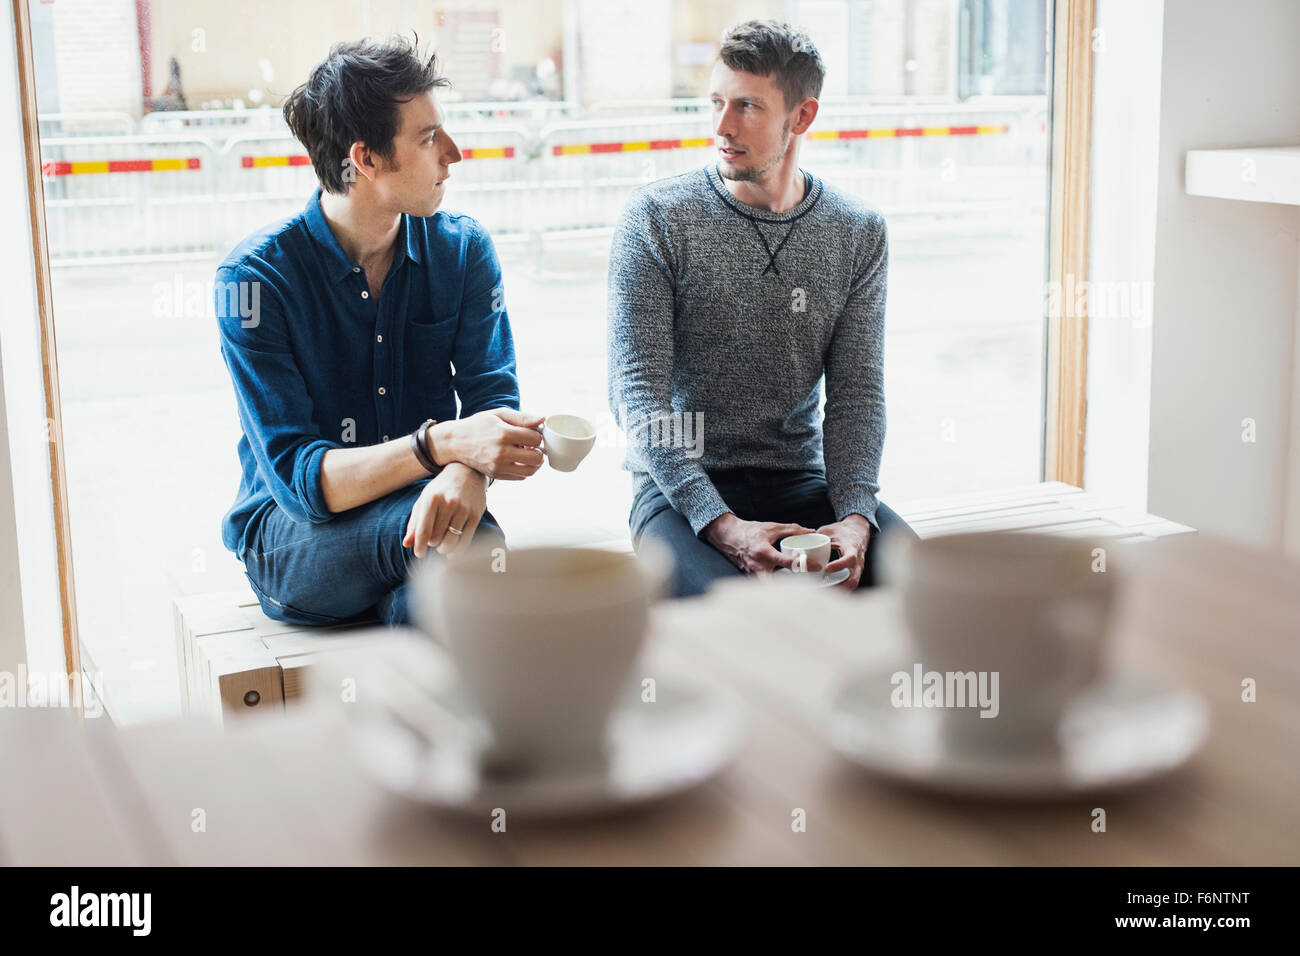 Friends conversing while sitting by window at cafeteria - Stock Image